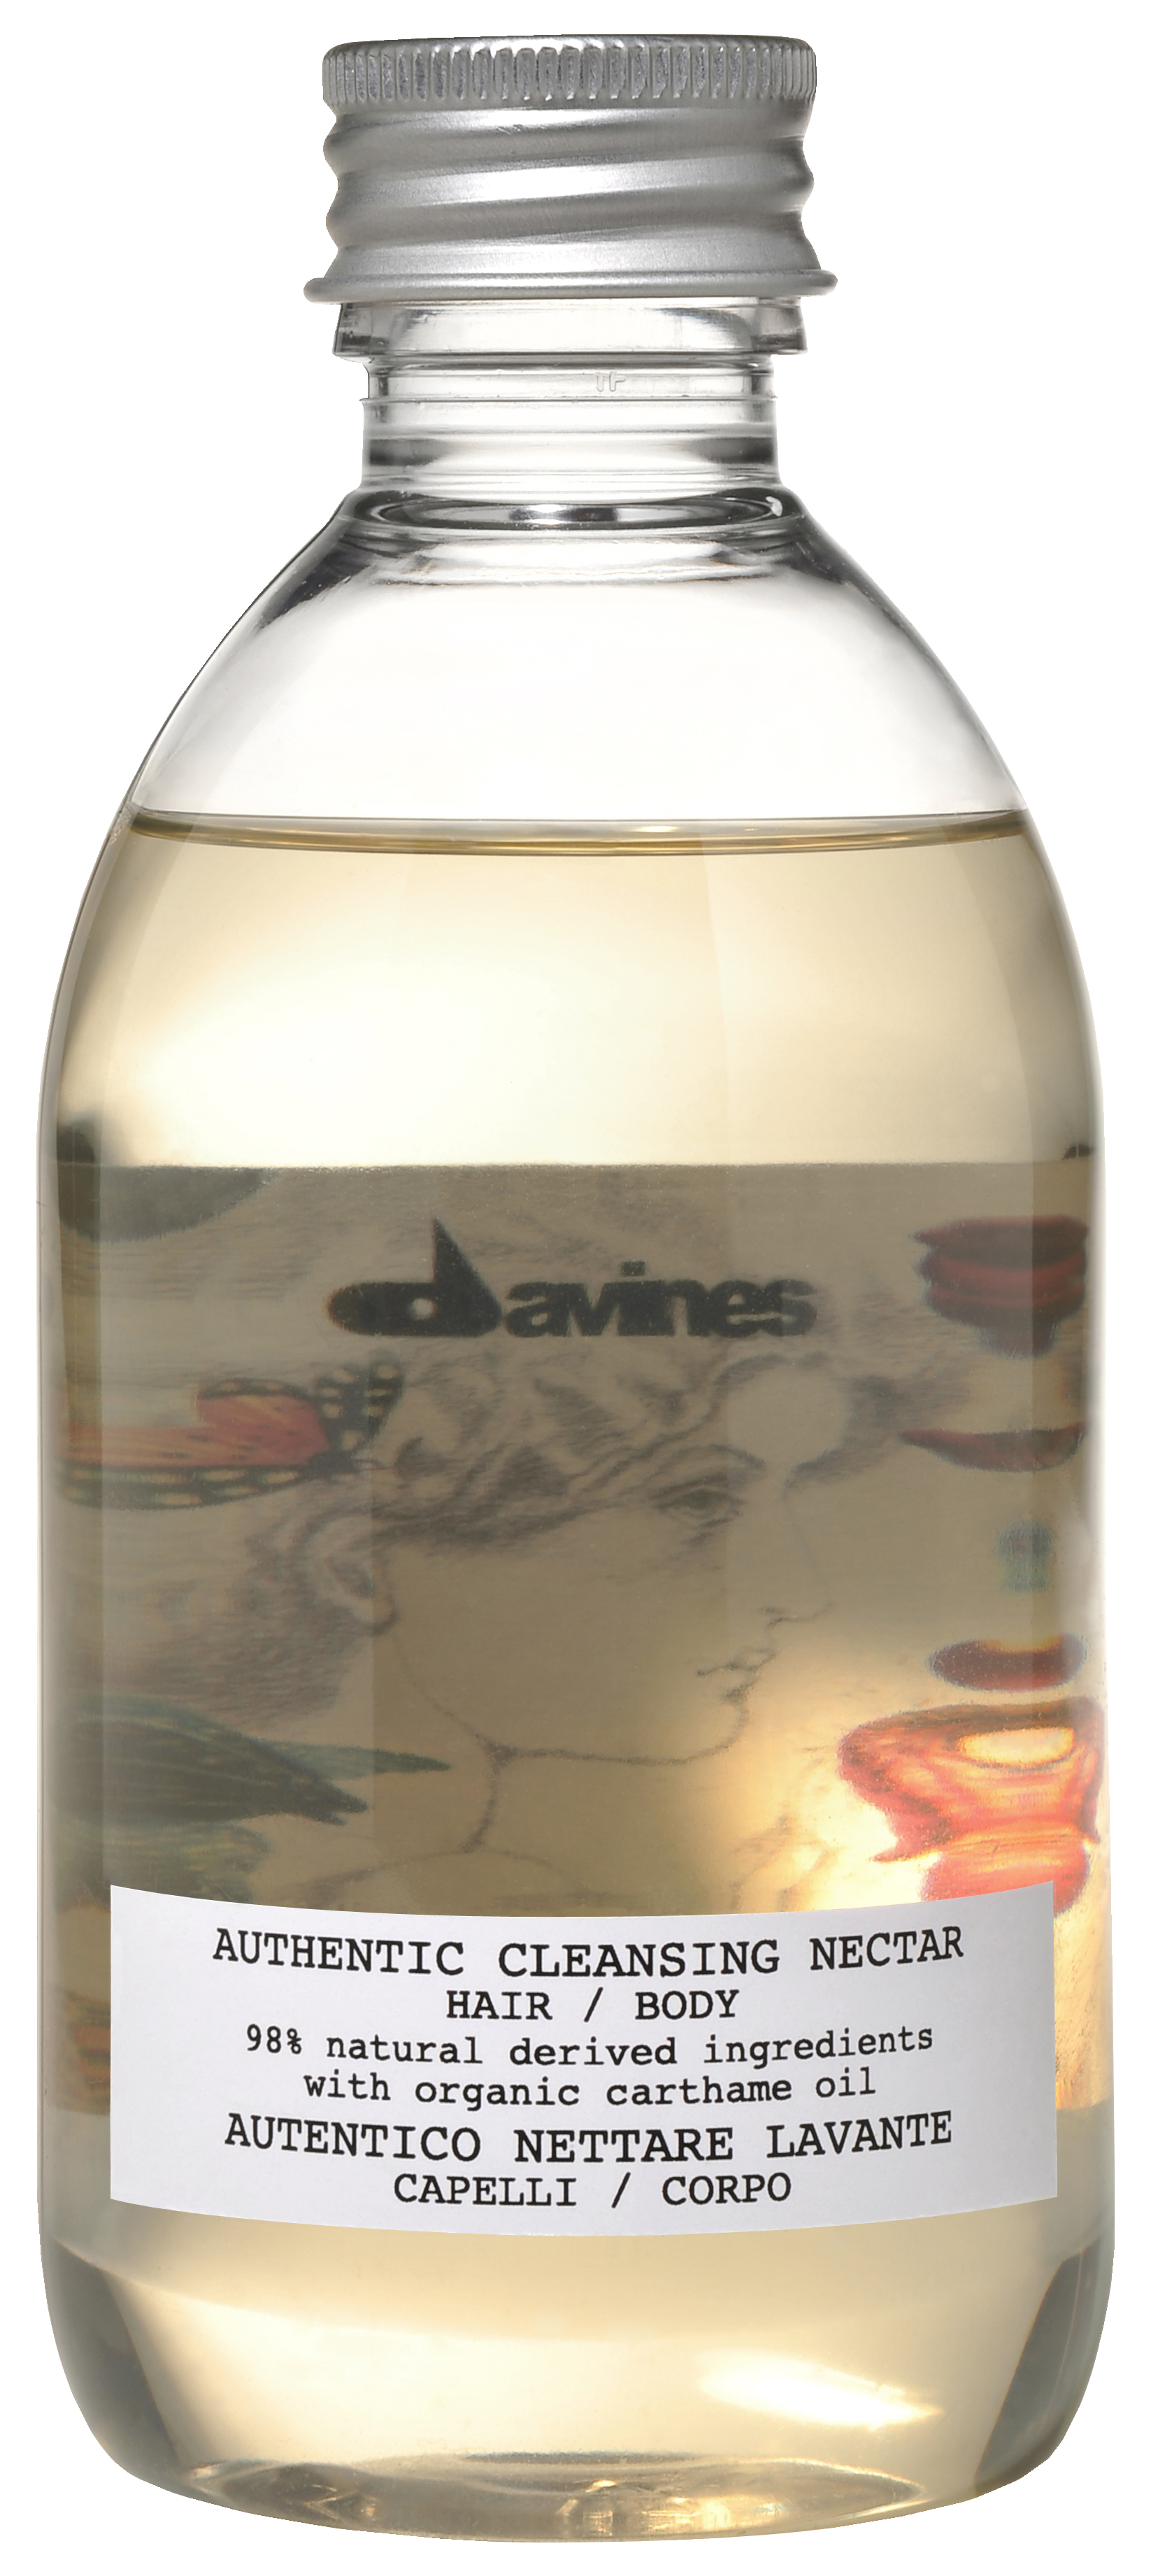 Davines Talmadge Hickman Chelsie Perkins Hair Stylist Owner Salon Bella Whidbey Langley Haircut Hair Color.png